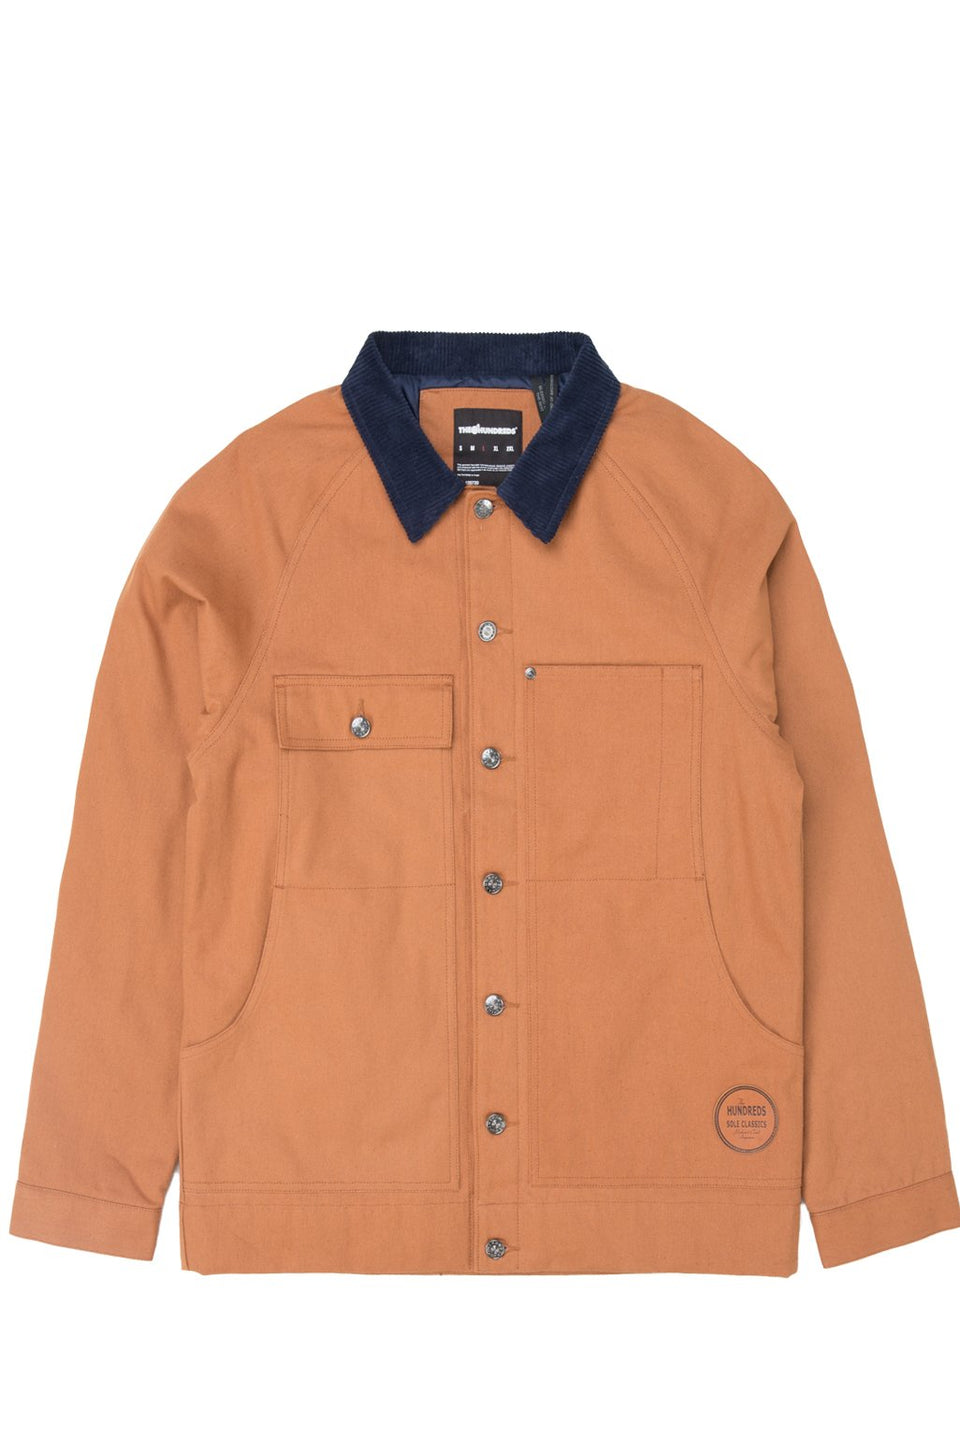 Bessemer Work Jacket